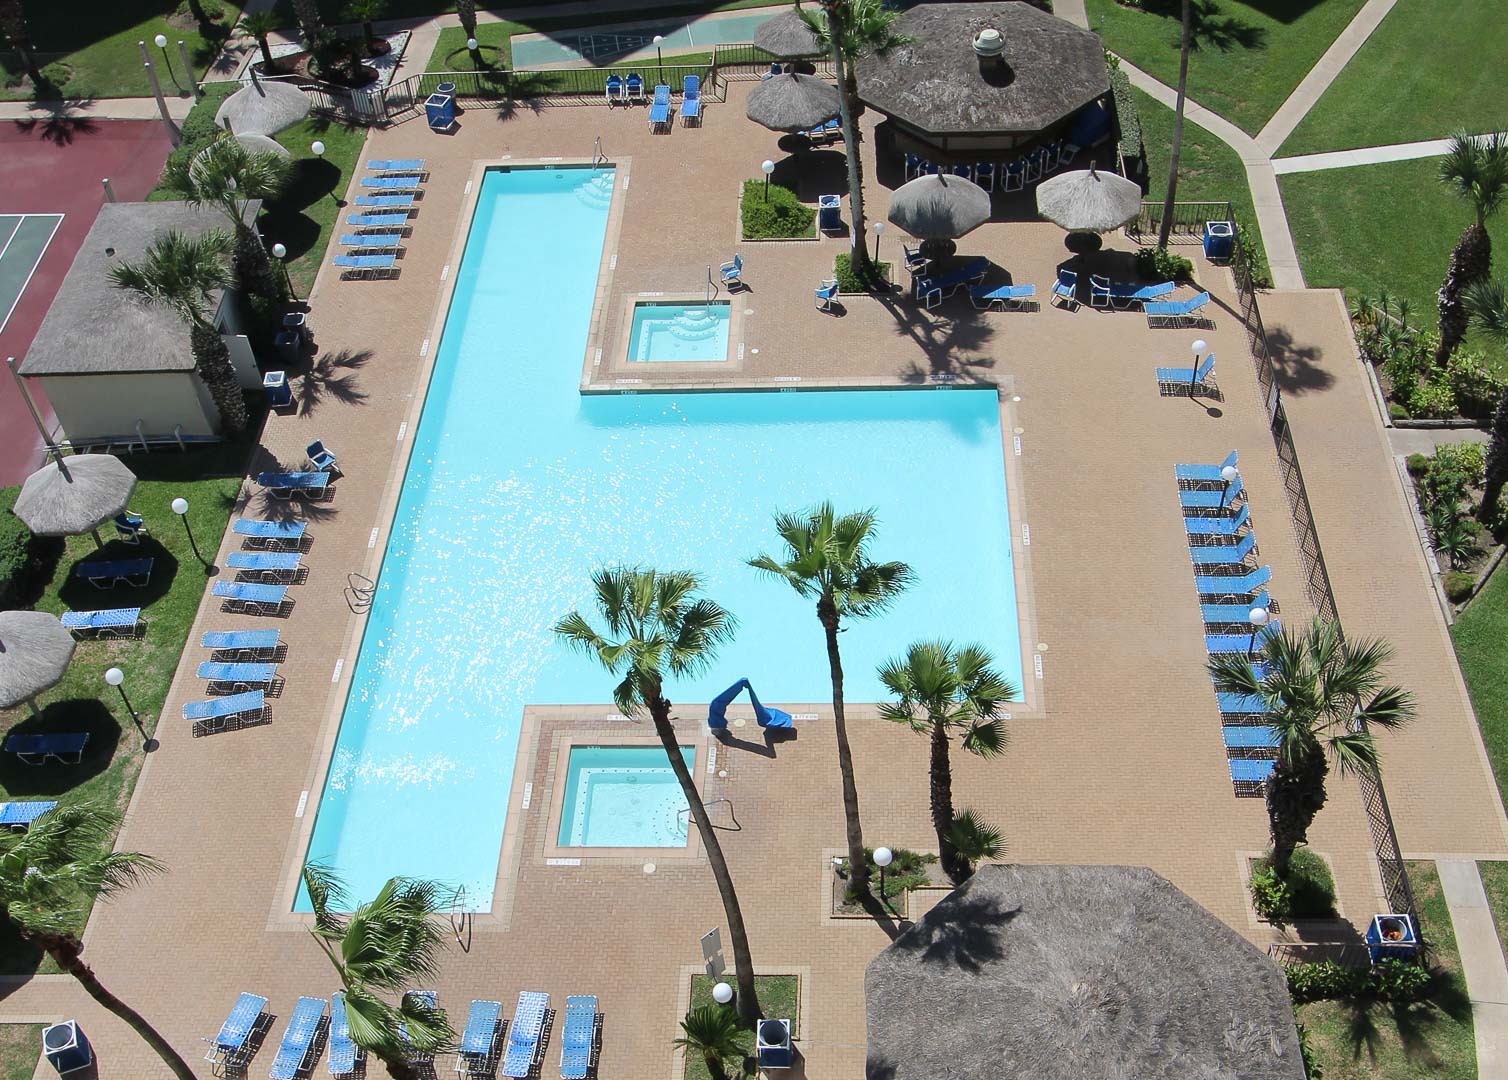 An outdoor swimming pool at VRI's Royale Beach and Tennis Club.